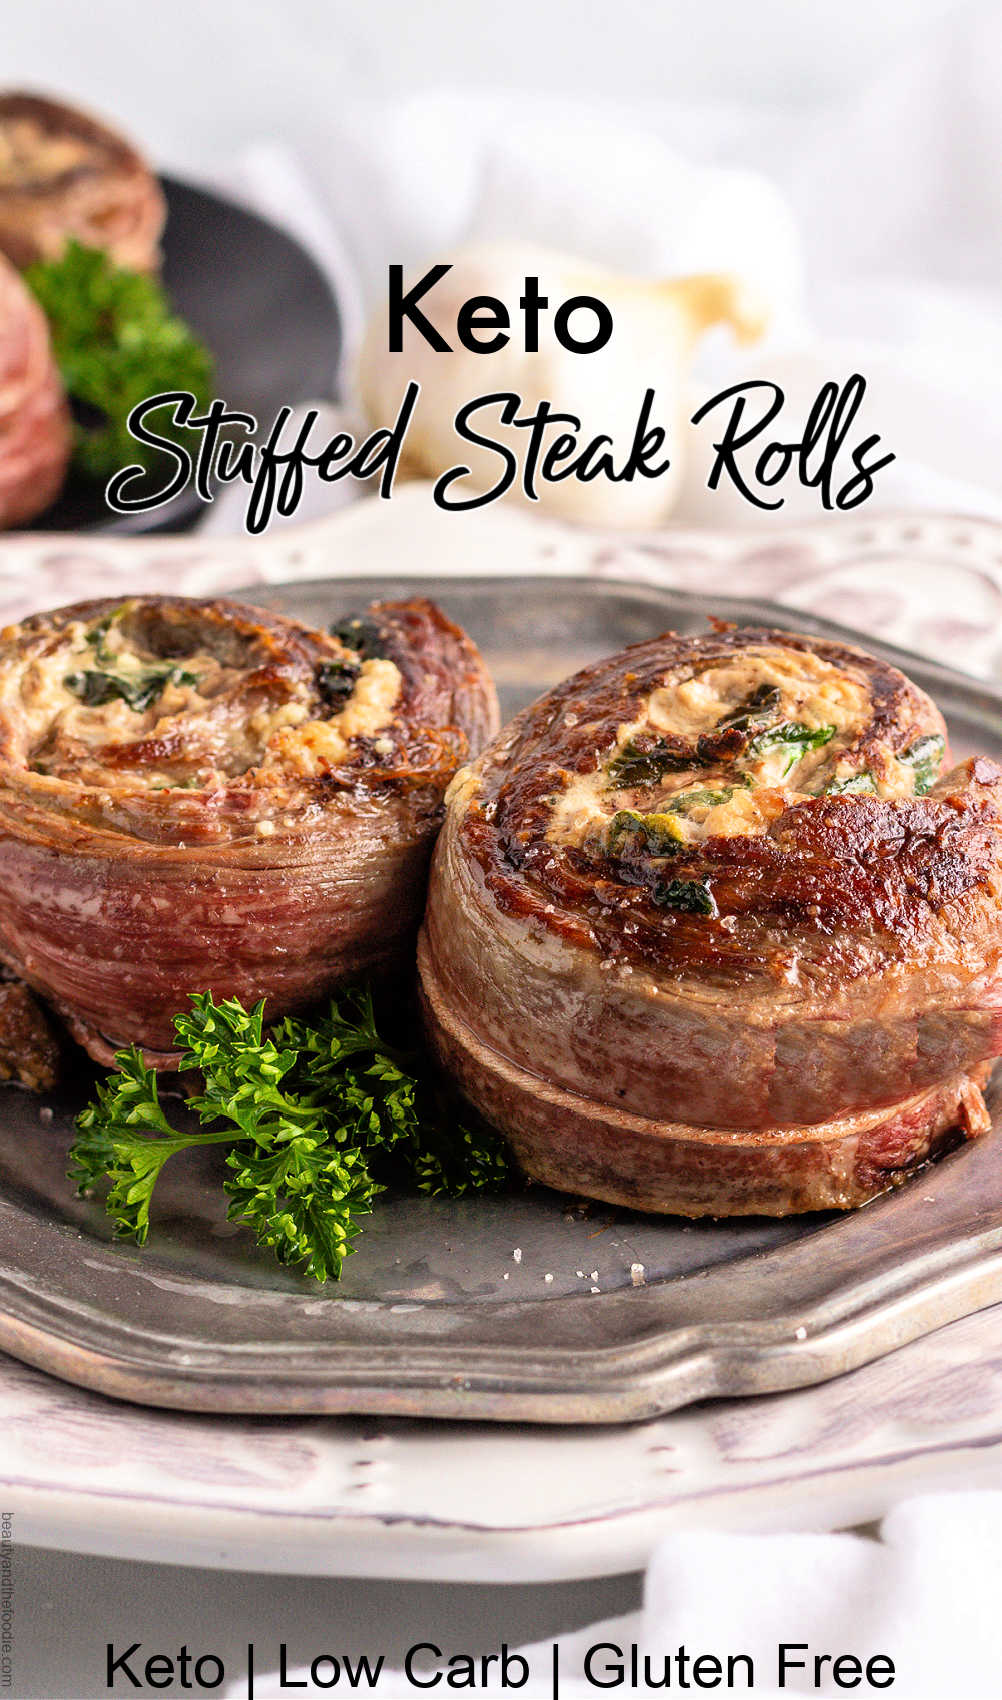 low carb sinach cheese stuffed flank steak rolls.